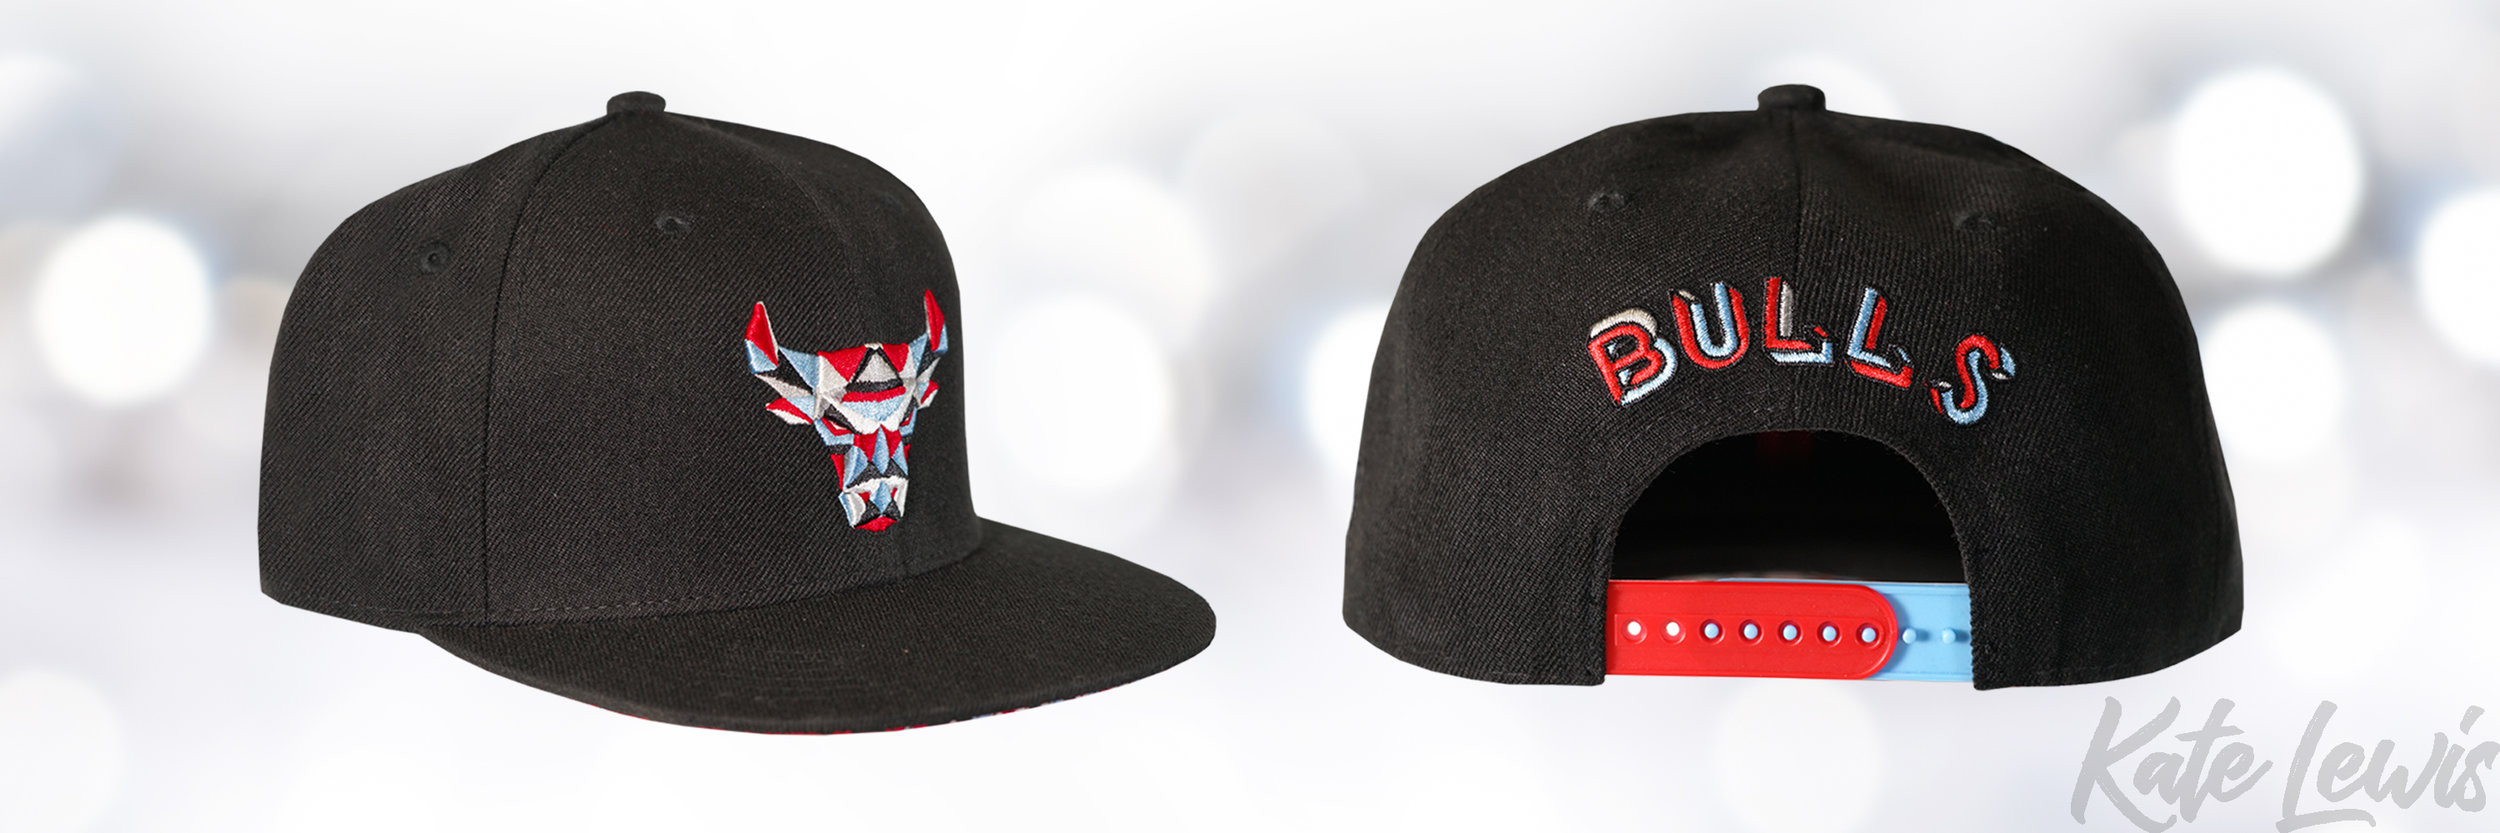 Bulls Website Crop1.jpg